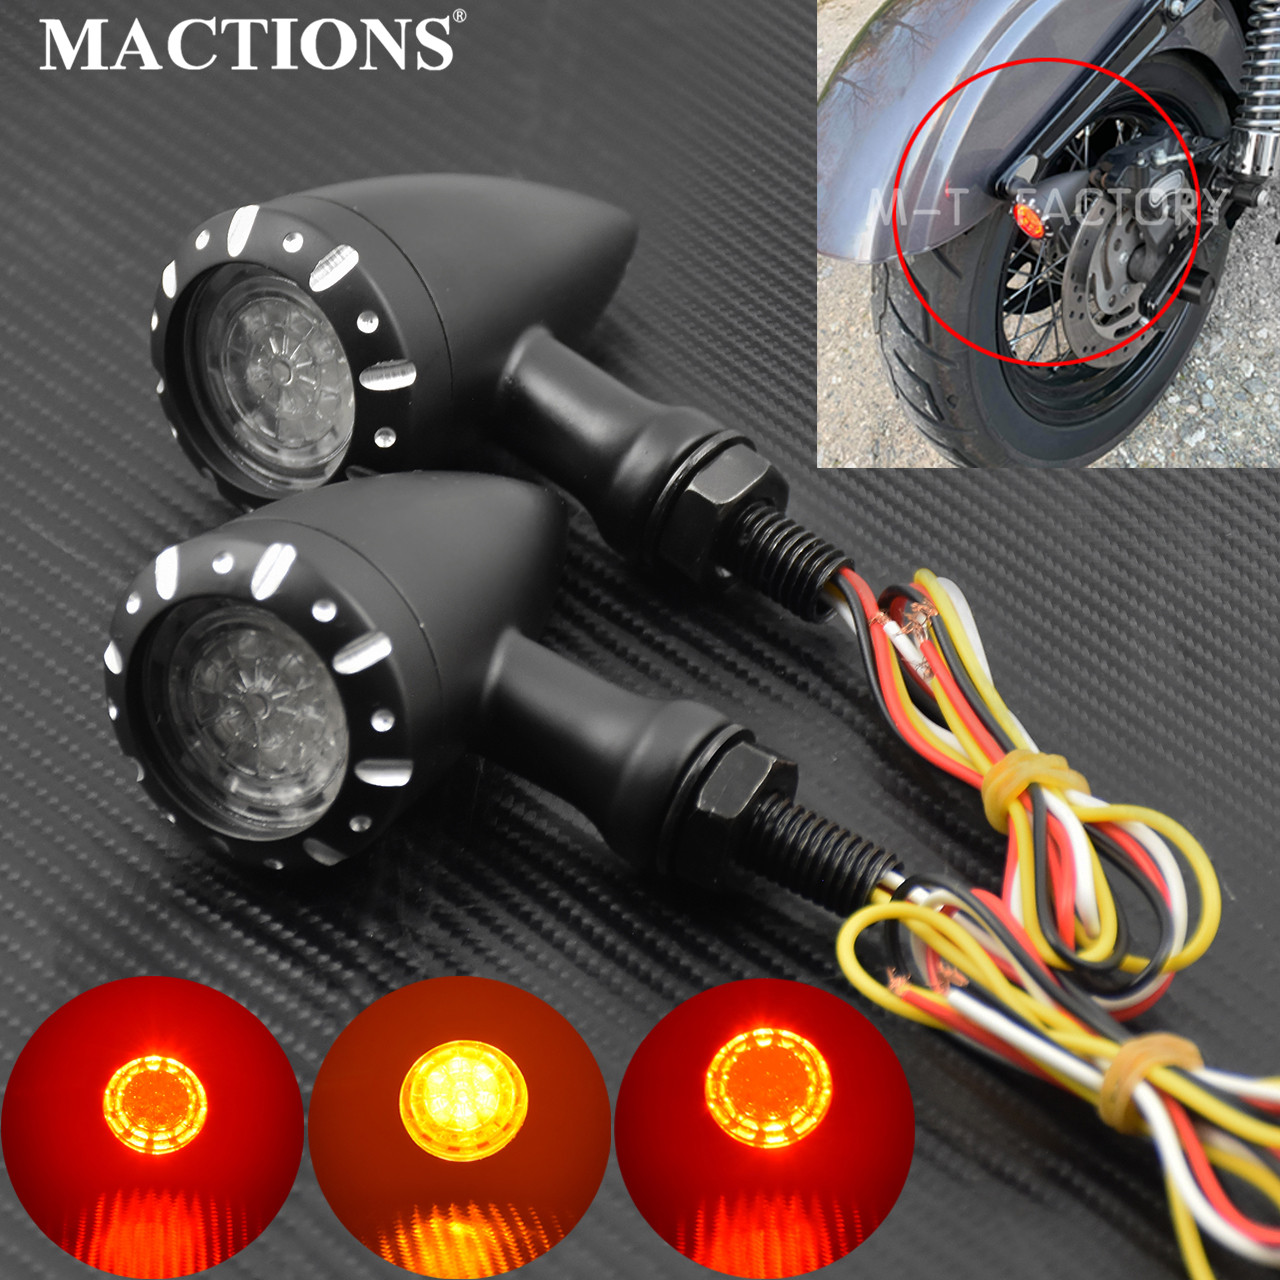 Motorcycle 1 Pair 10mm Black LED Brake Blinker Light Turn Signal Flashing For Harley Cruiser Chopper Indicator Lights